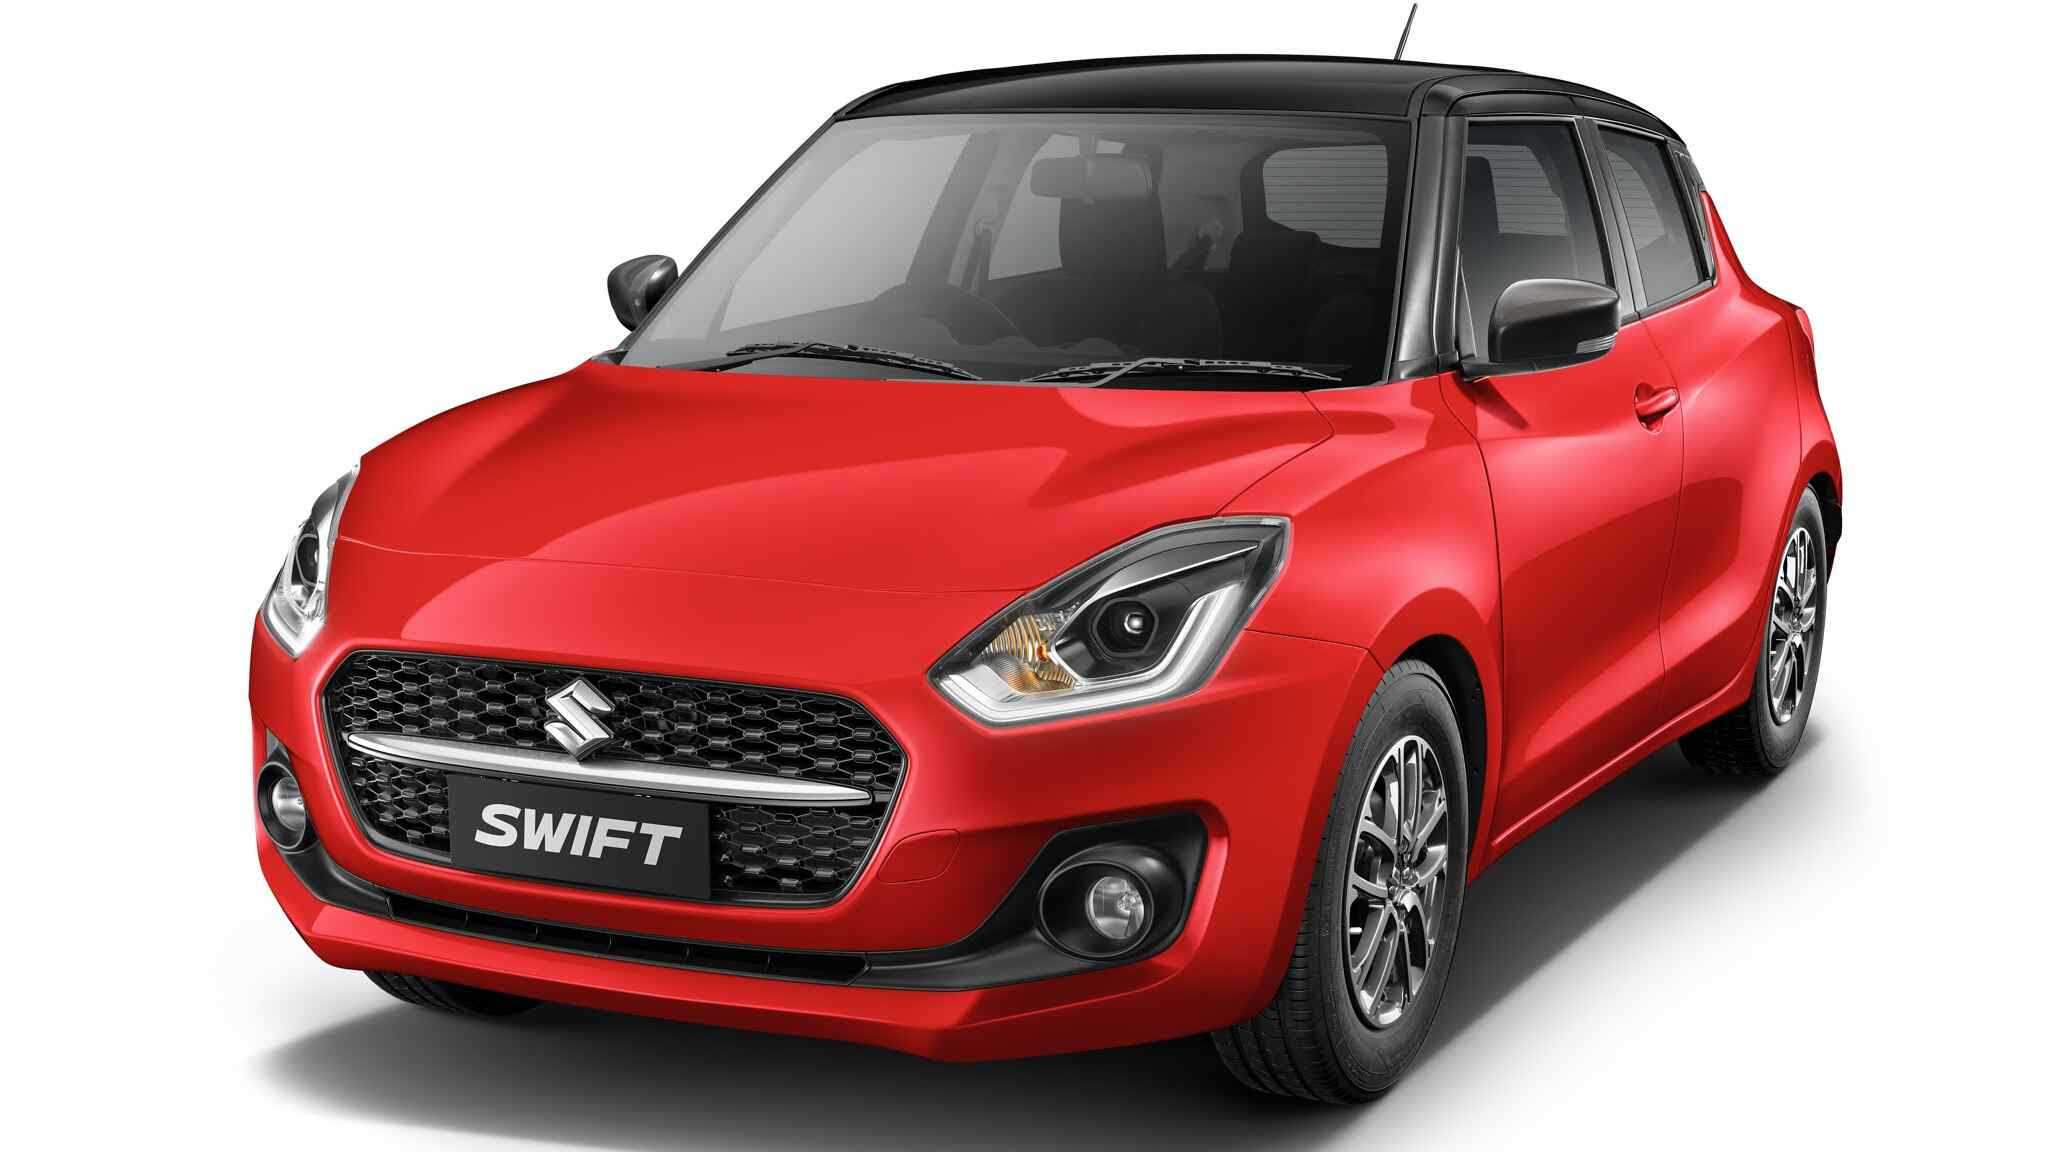 The Maruti Suzuki Swift facelift's 1.2-litre DualJet engine is more powerful and more fuel-efficient than the K12B unit it replaces. Image: Maruti Suzuki